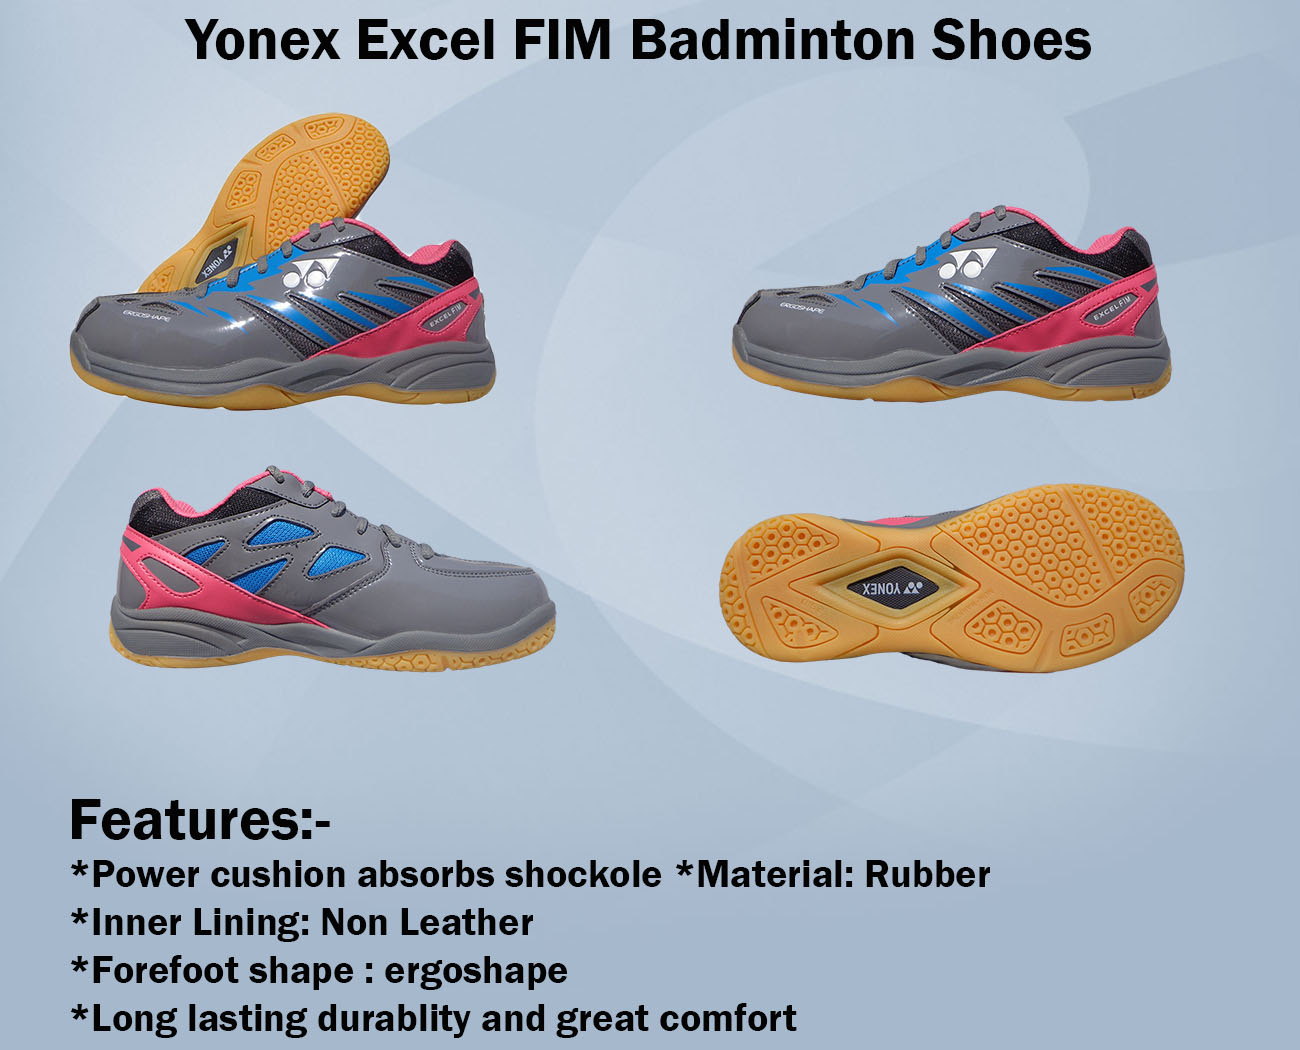 Yonex Excel FIM Badminton Shoes Gray and Pink